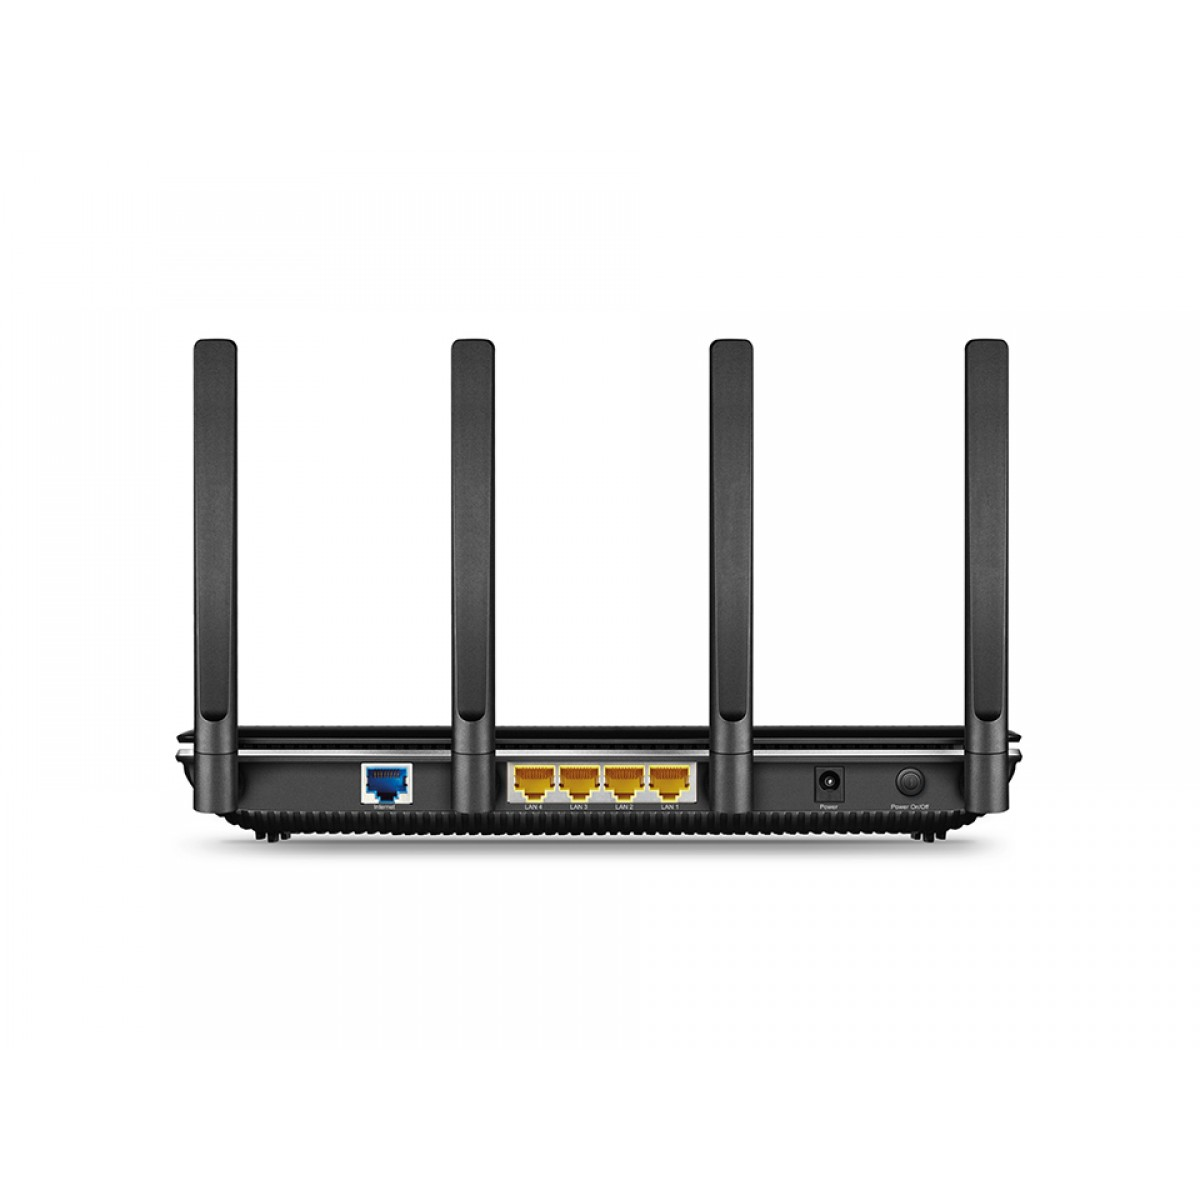 Roteador Wireless TP-LINK Archer C3150, MU-MIMO AC3150